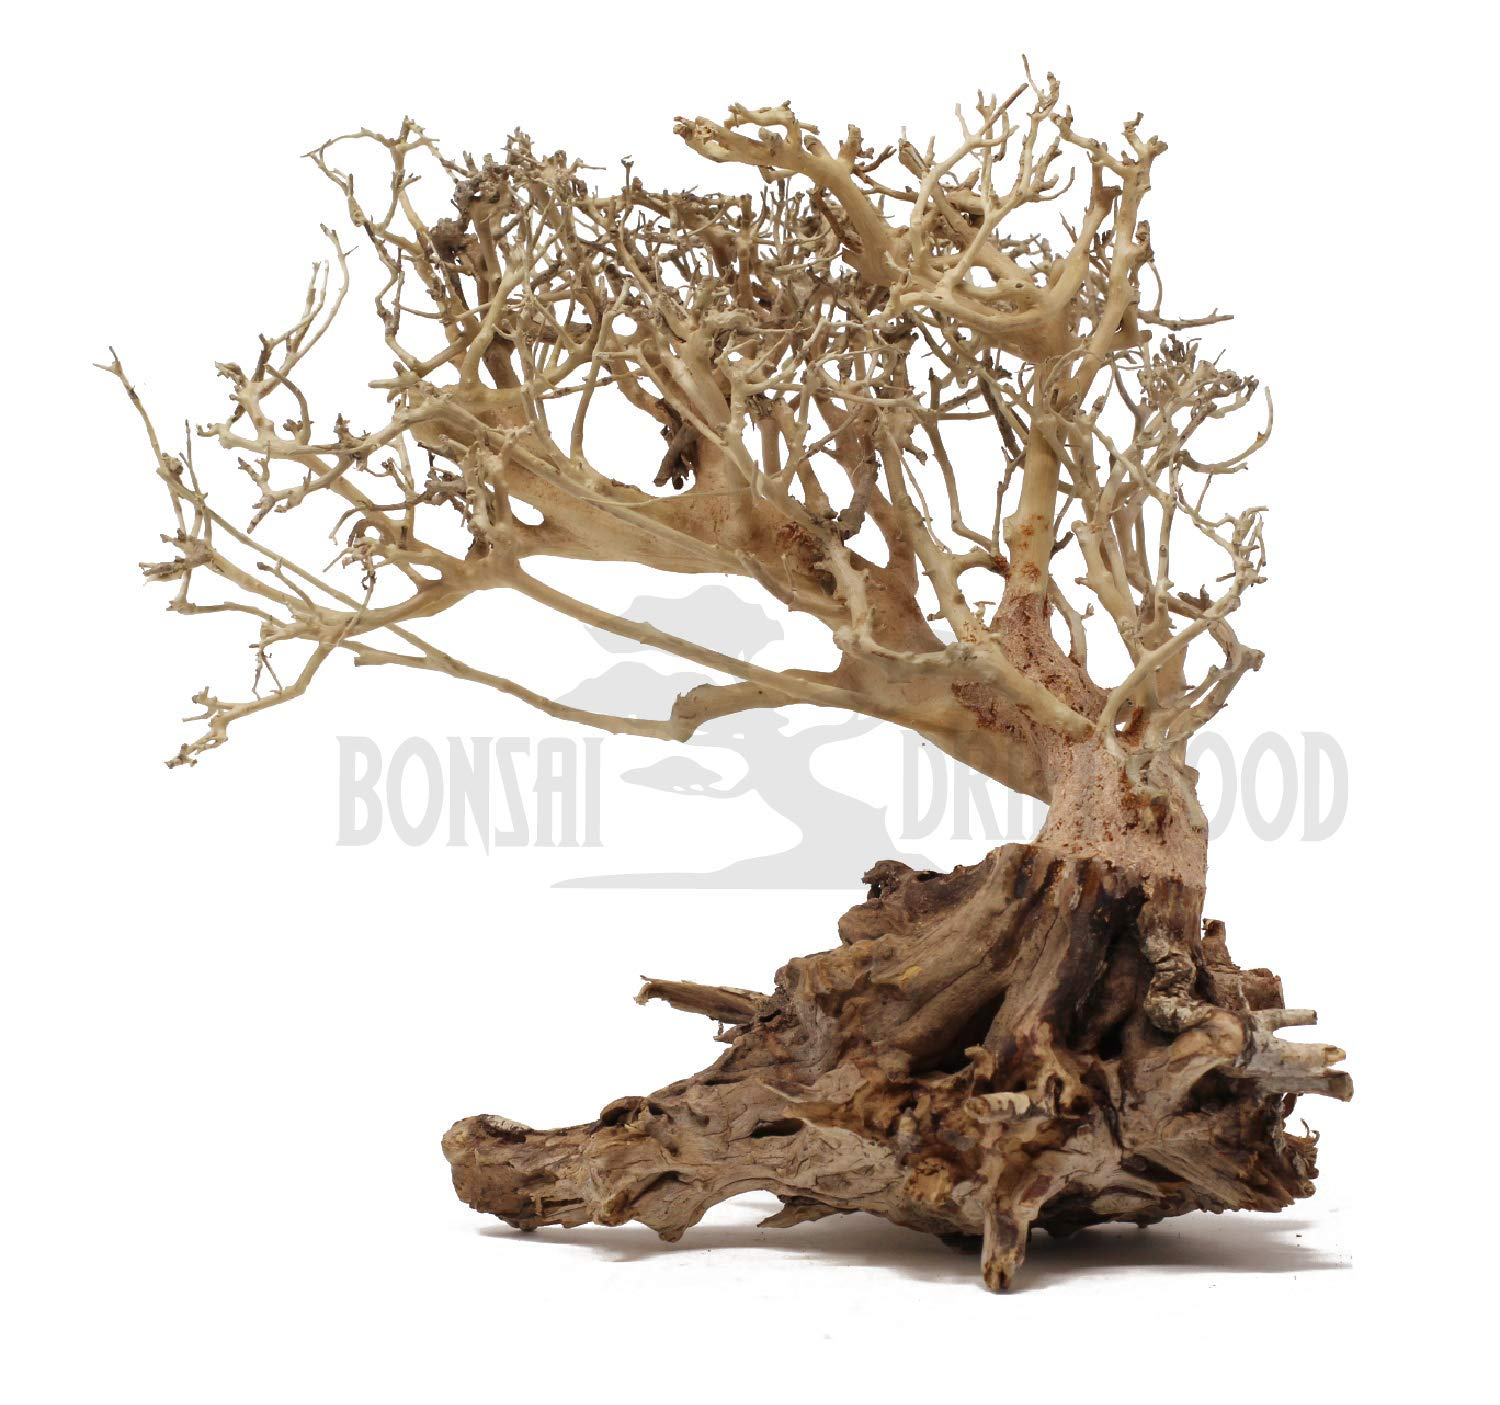 Bonsai Driftwood Aquarium Tree on Rock (8 Inch) Natural, Handcrafted Fish Tank Decoration | Helps Balance Water pH Levels, Stabilizes Environments | Easy to Install by Bonsai Driftwood